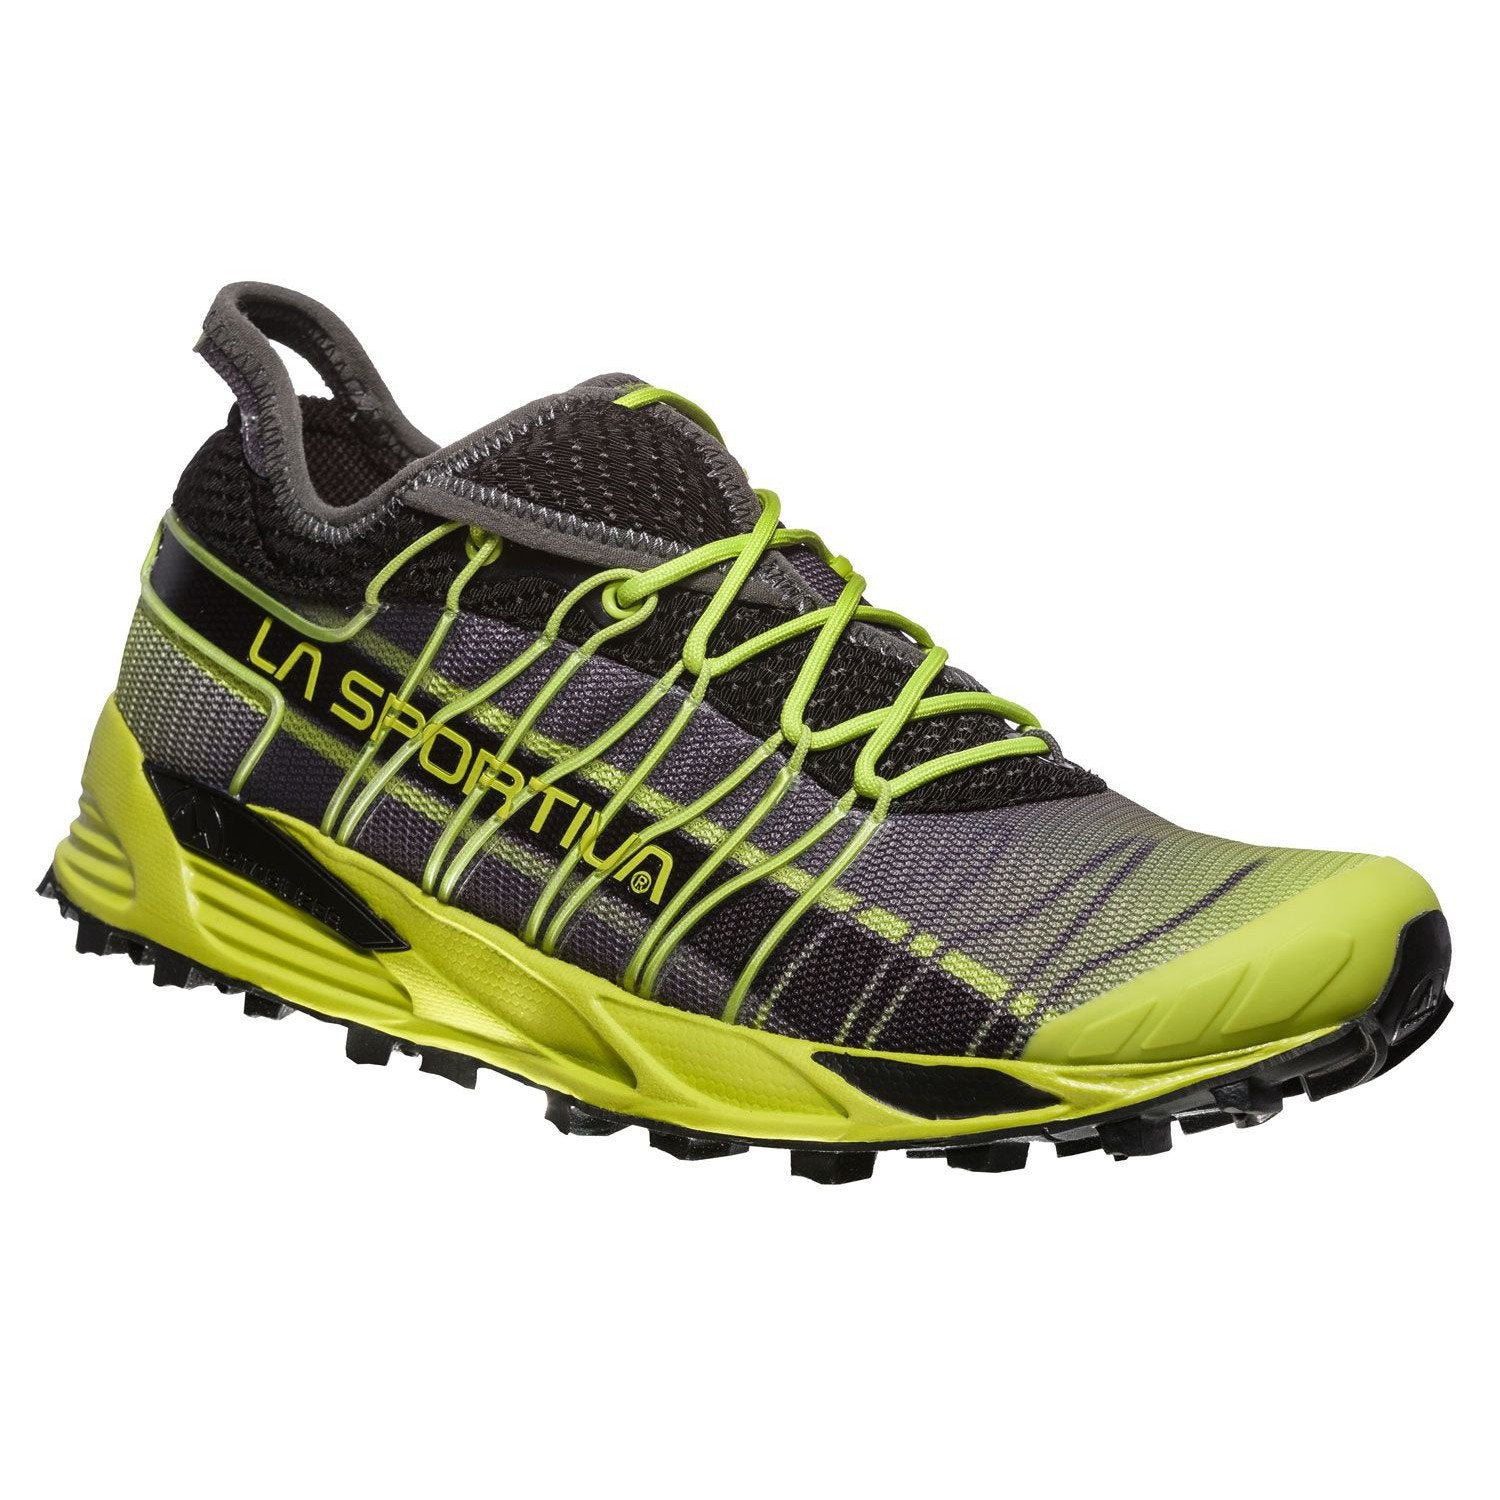 La Sportiva Mutant trail running shoe, outer side view in green/black colours